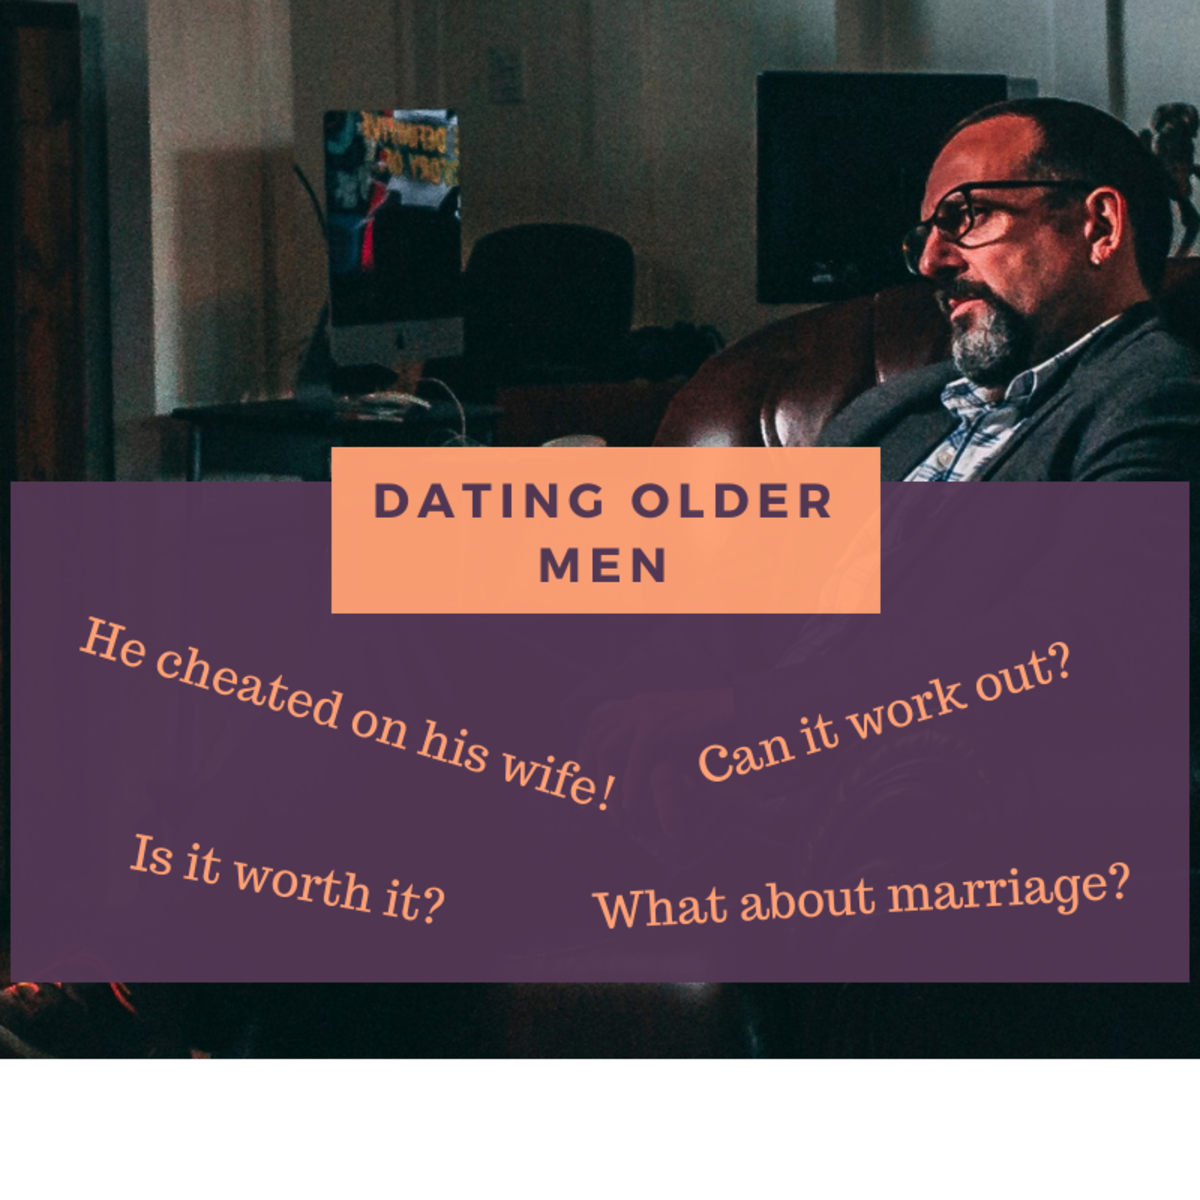 What Are the Benefits and Challenges of Dating Older Men?